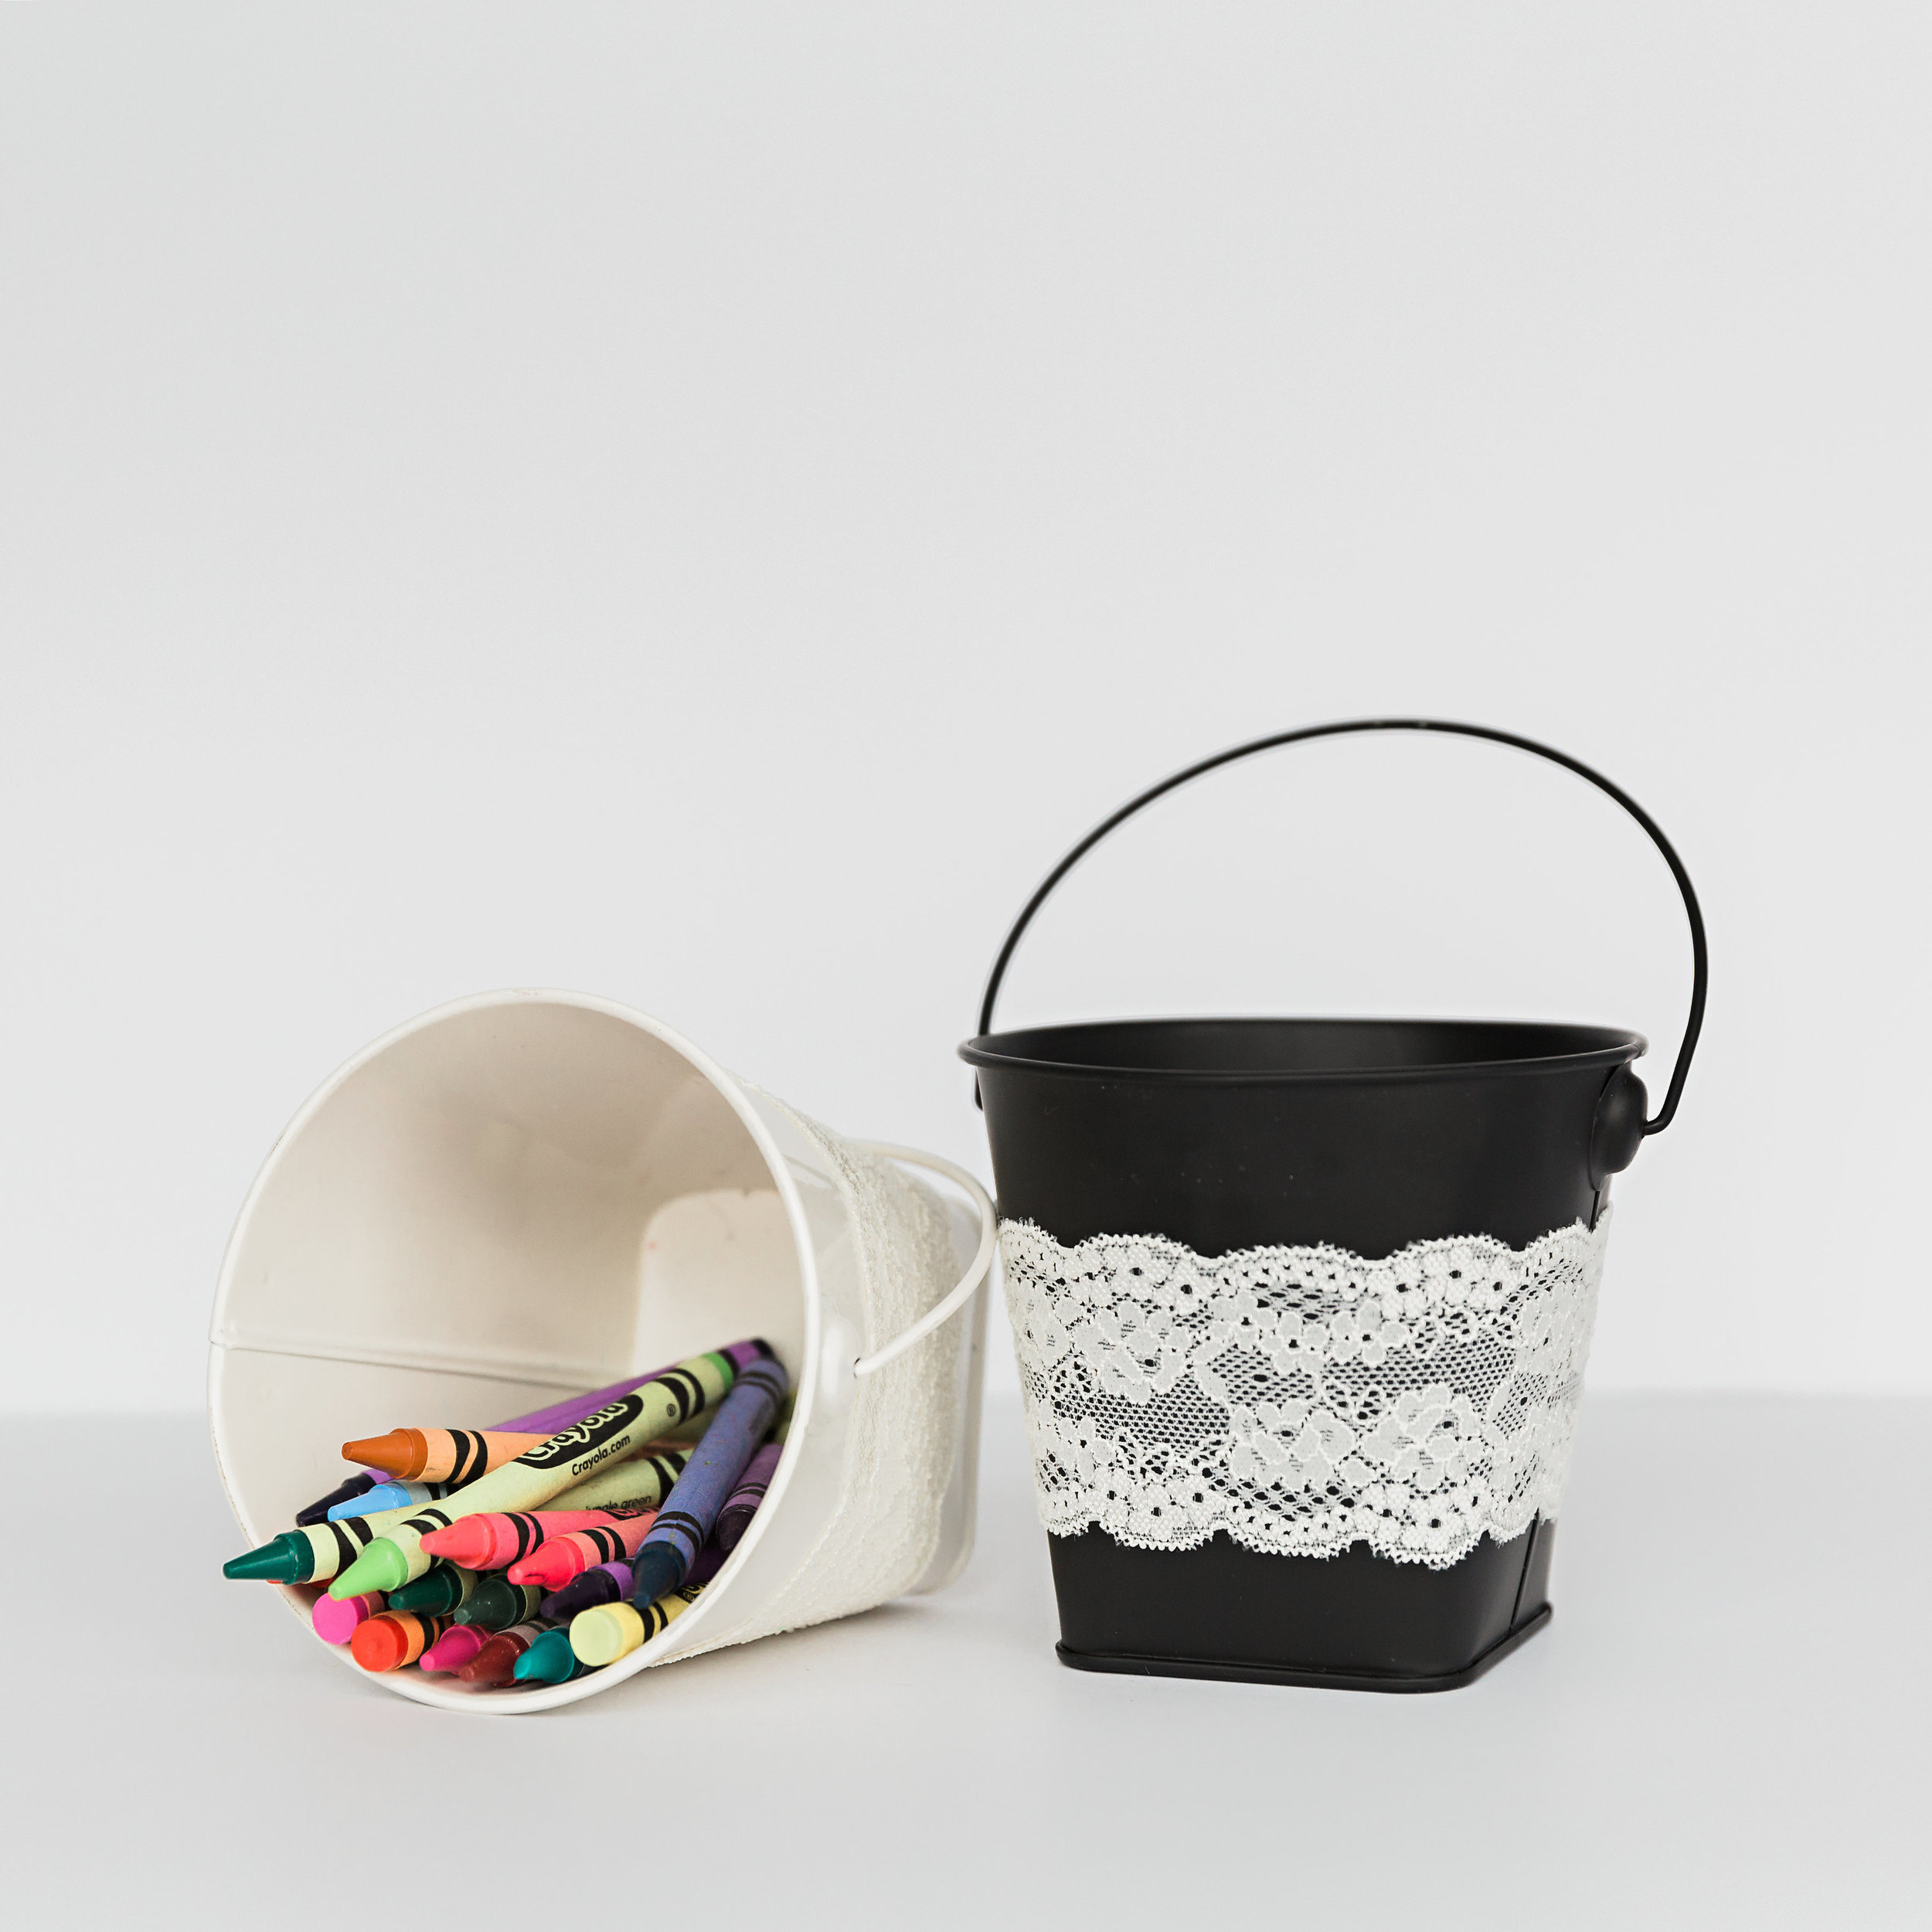 Small Metal buckets with Handle, White & Black  dimensions: 4 inches x4.5 inches >>>$0.50 each<<<